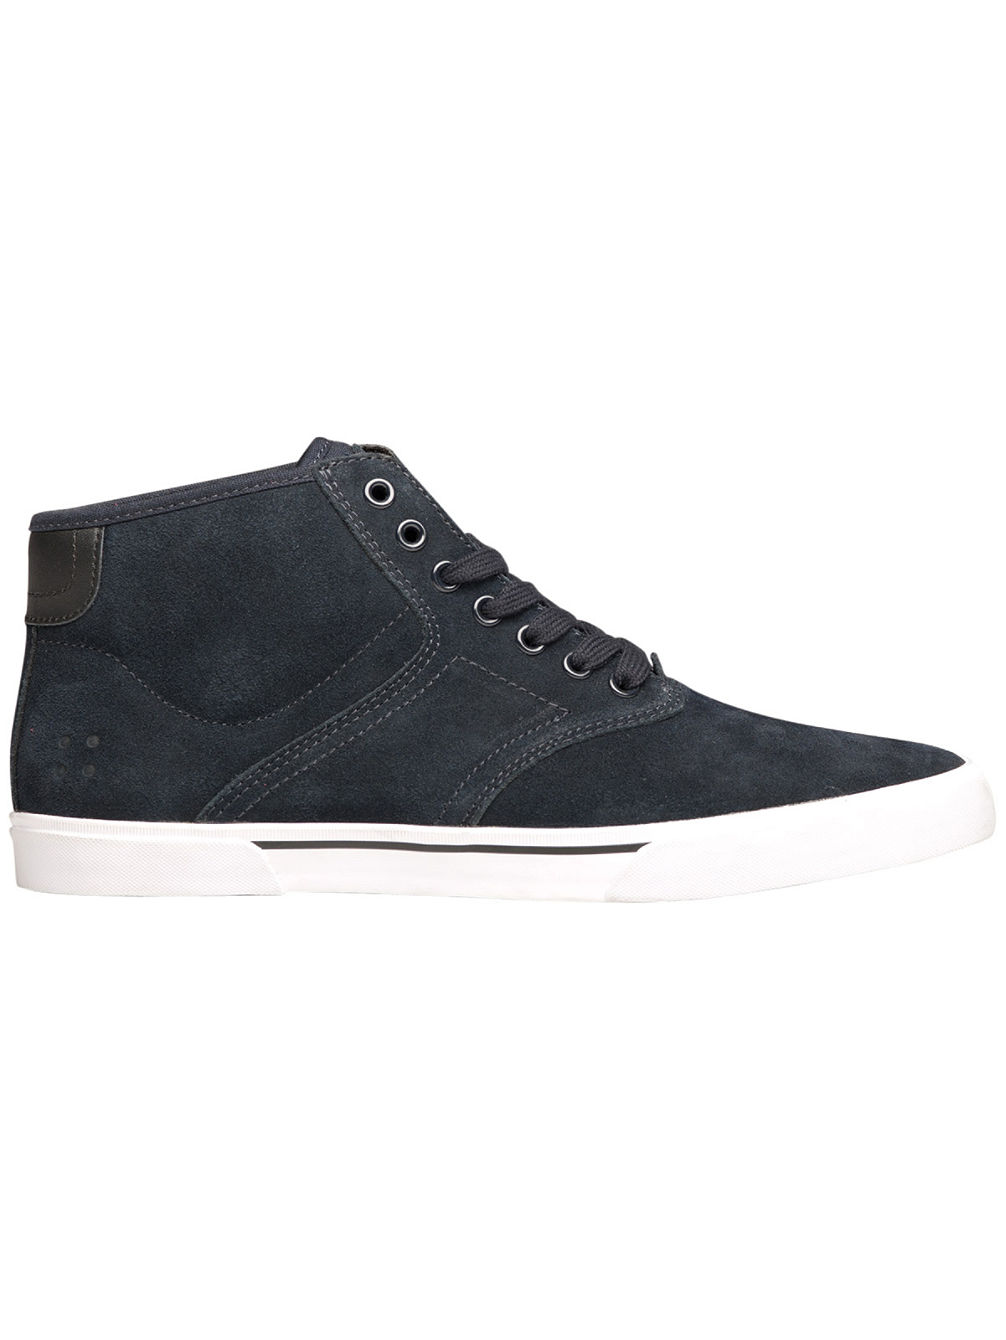 c31f11582d Buy Gravis Dylan Mid Suede online at Blue Tomato